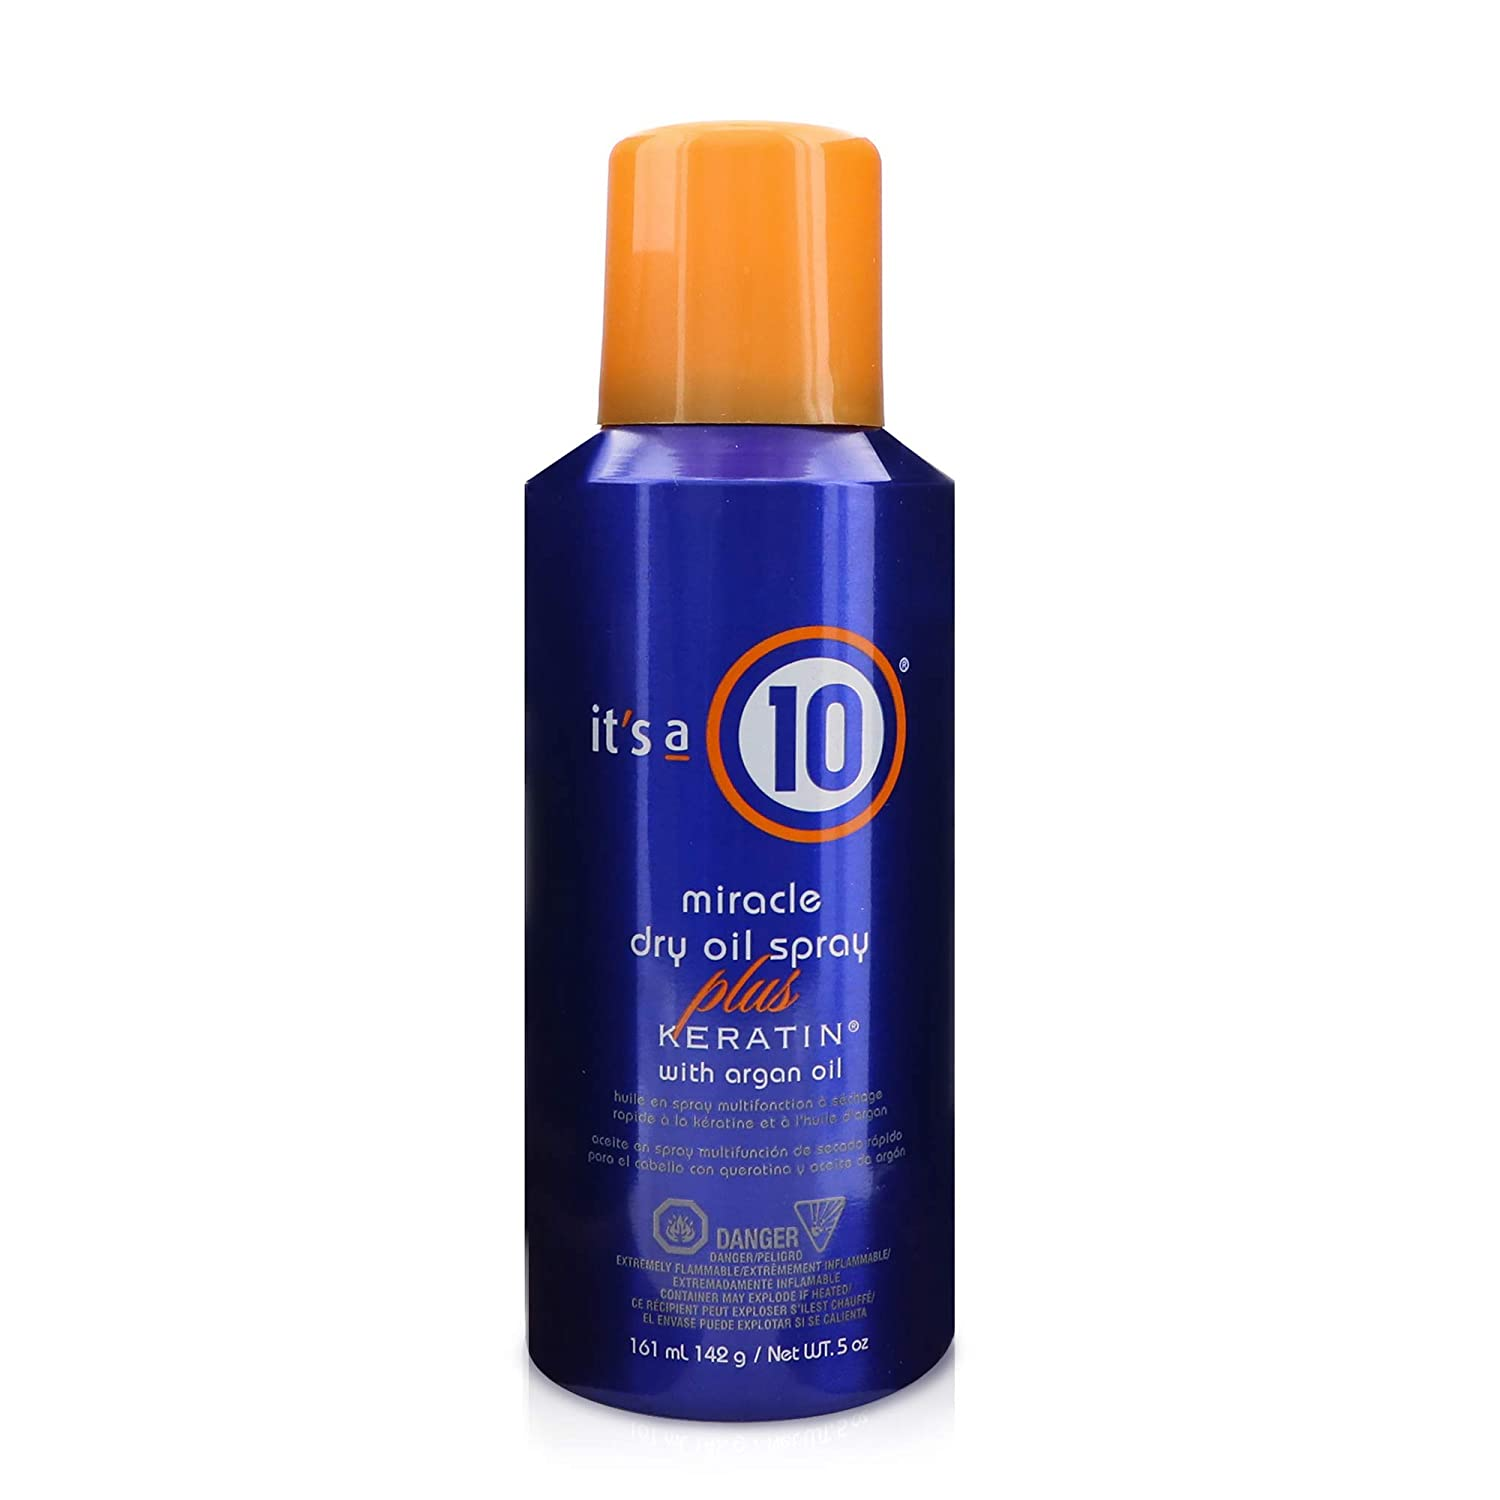 It's a 10 Haircare Miracle Dry Oil Spray Plus Keratin with Argan Oil, 5 fl. oz.